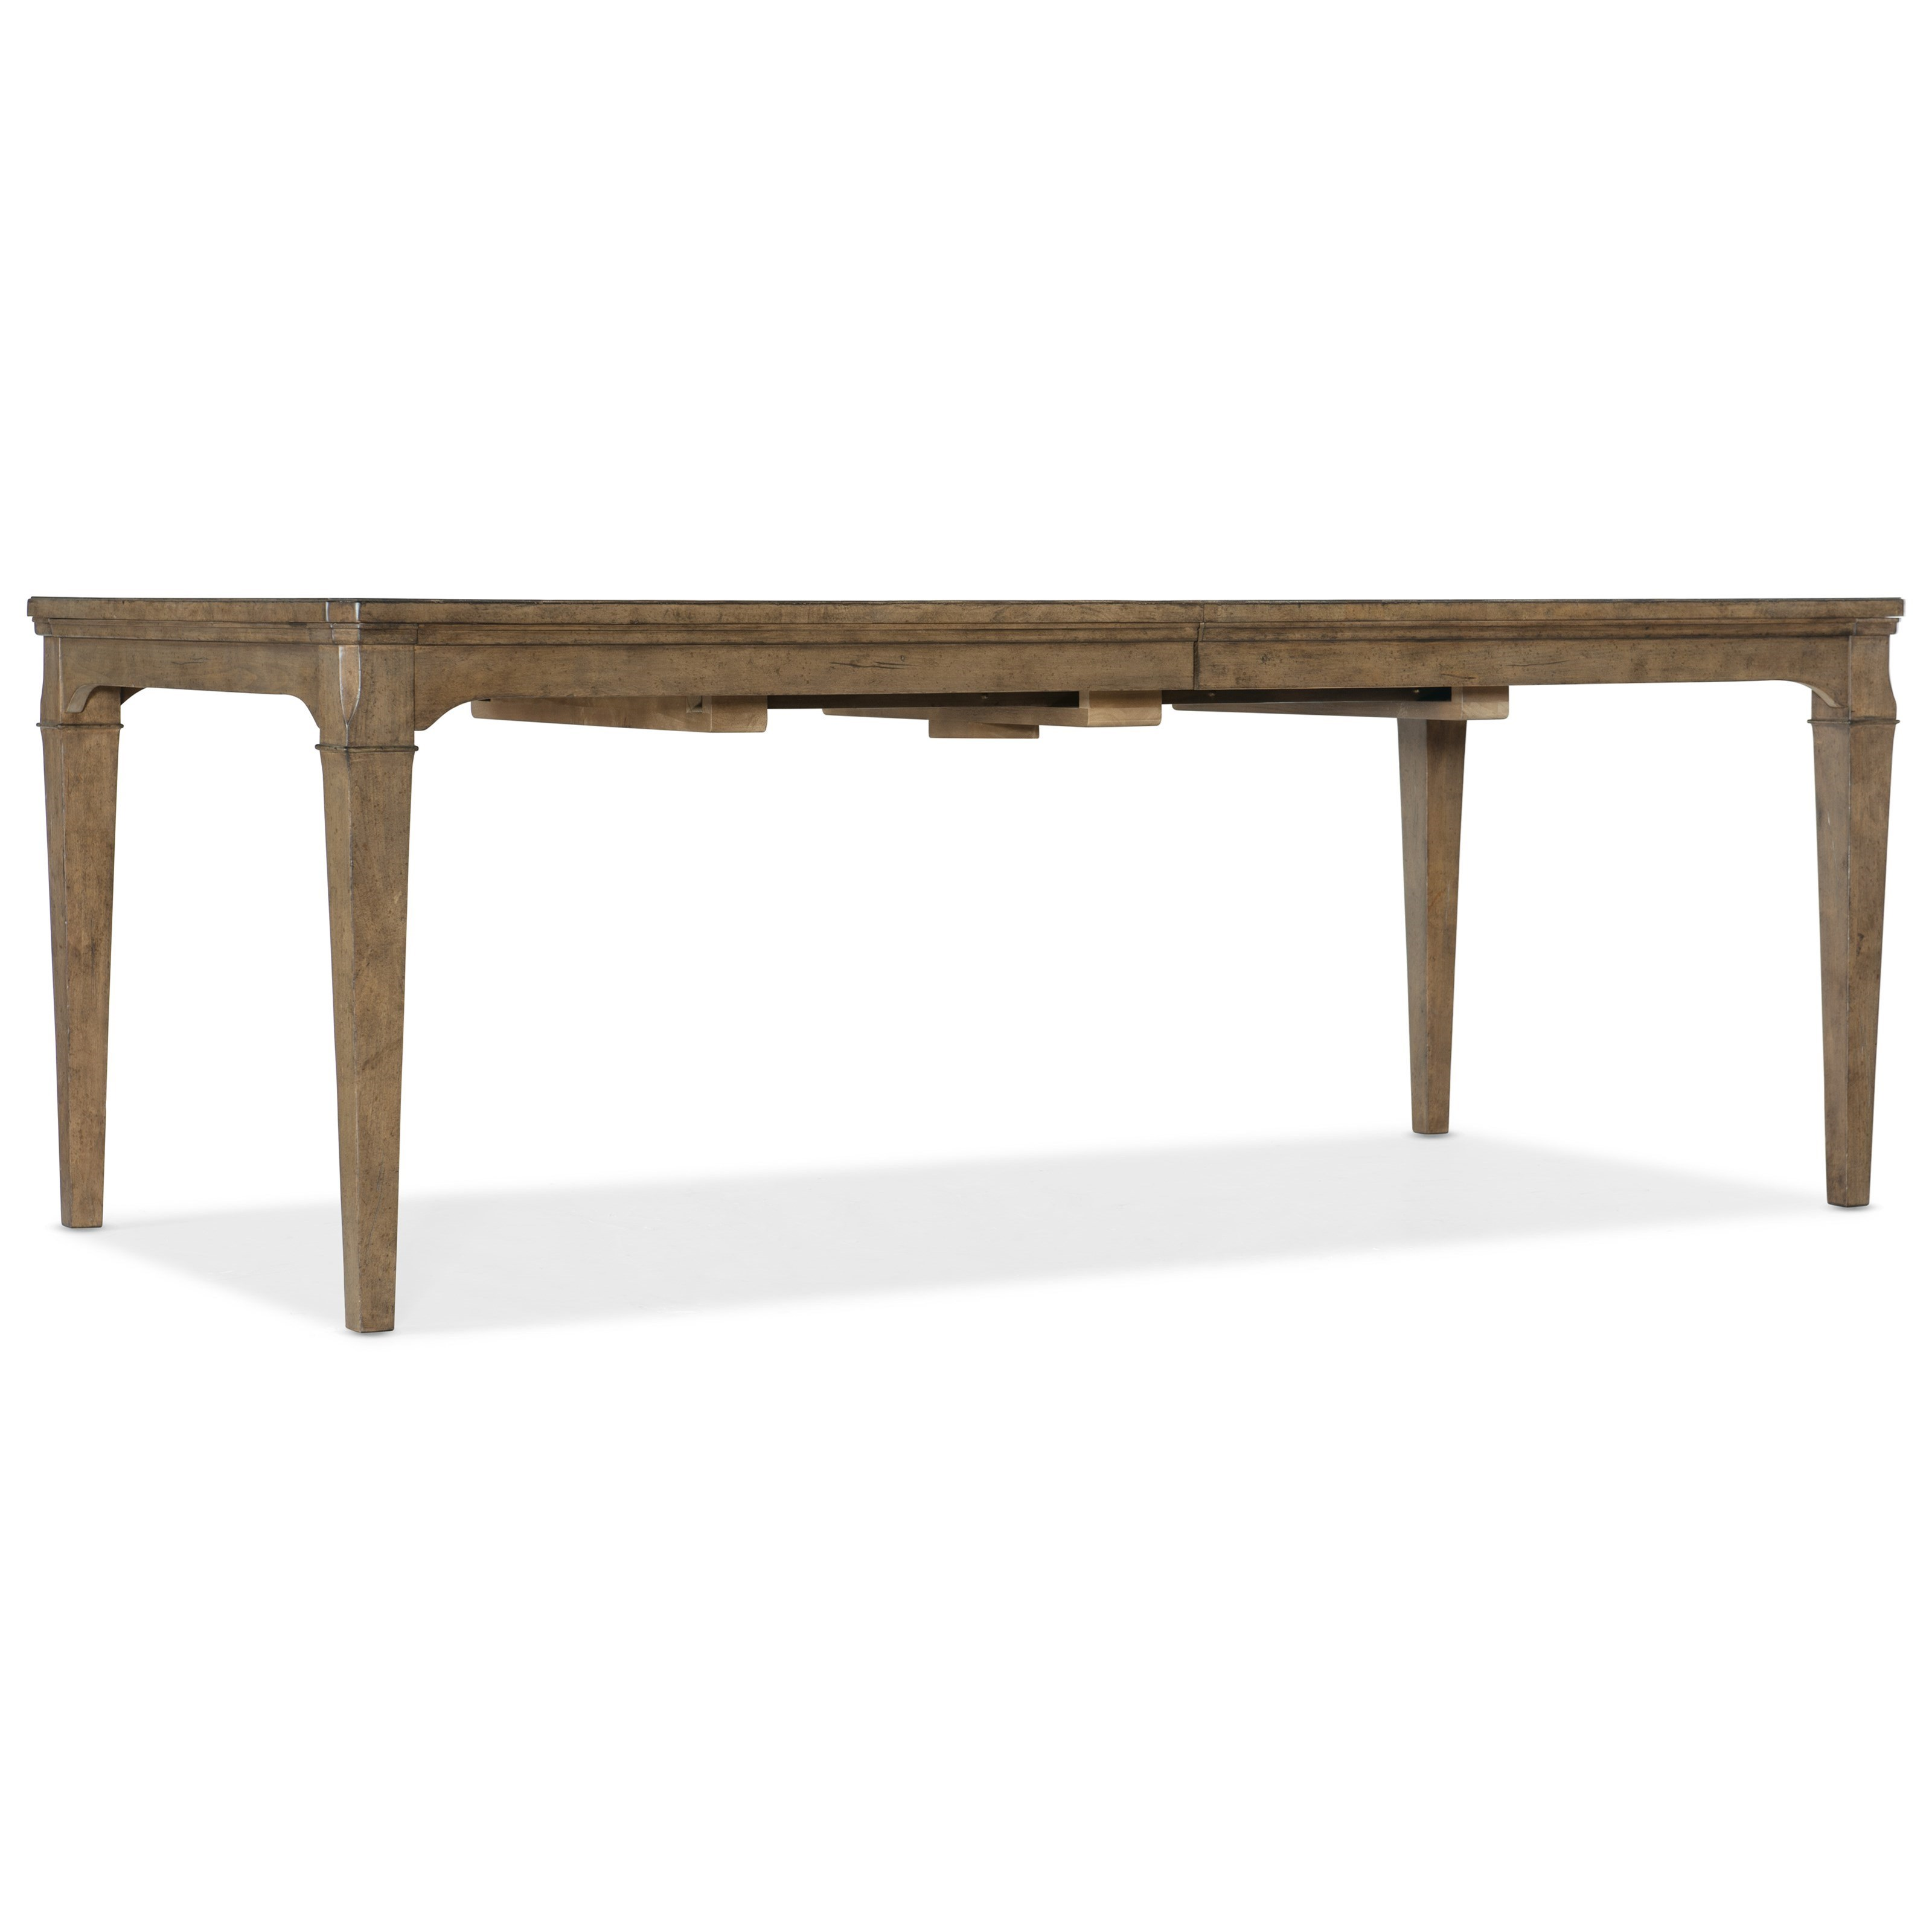 82 Inch Rectangle Dining Table w Leaf